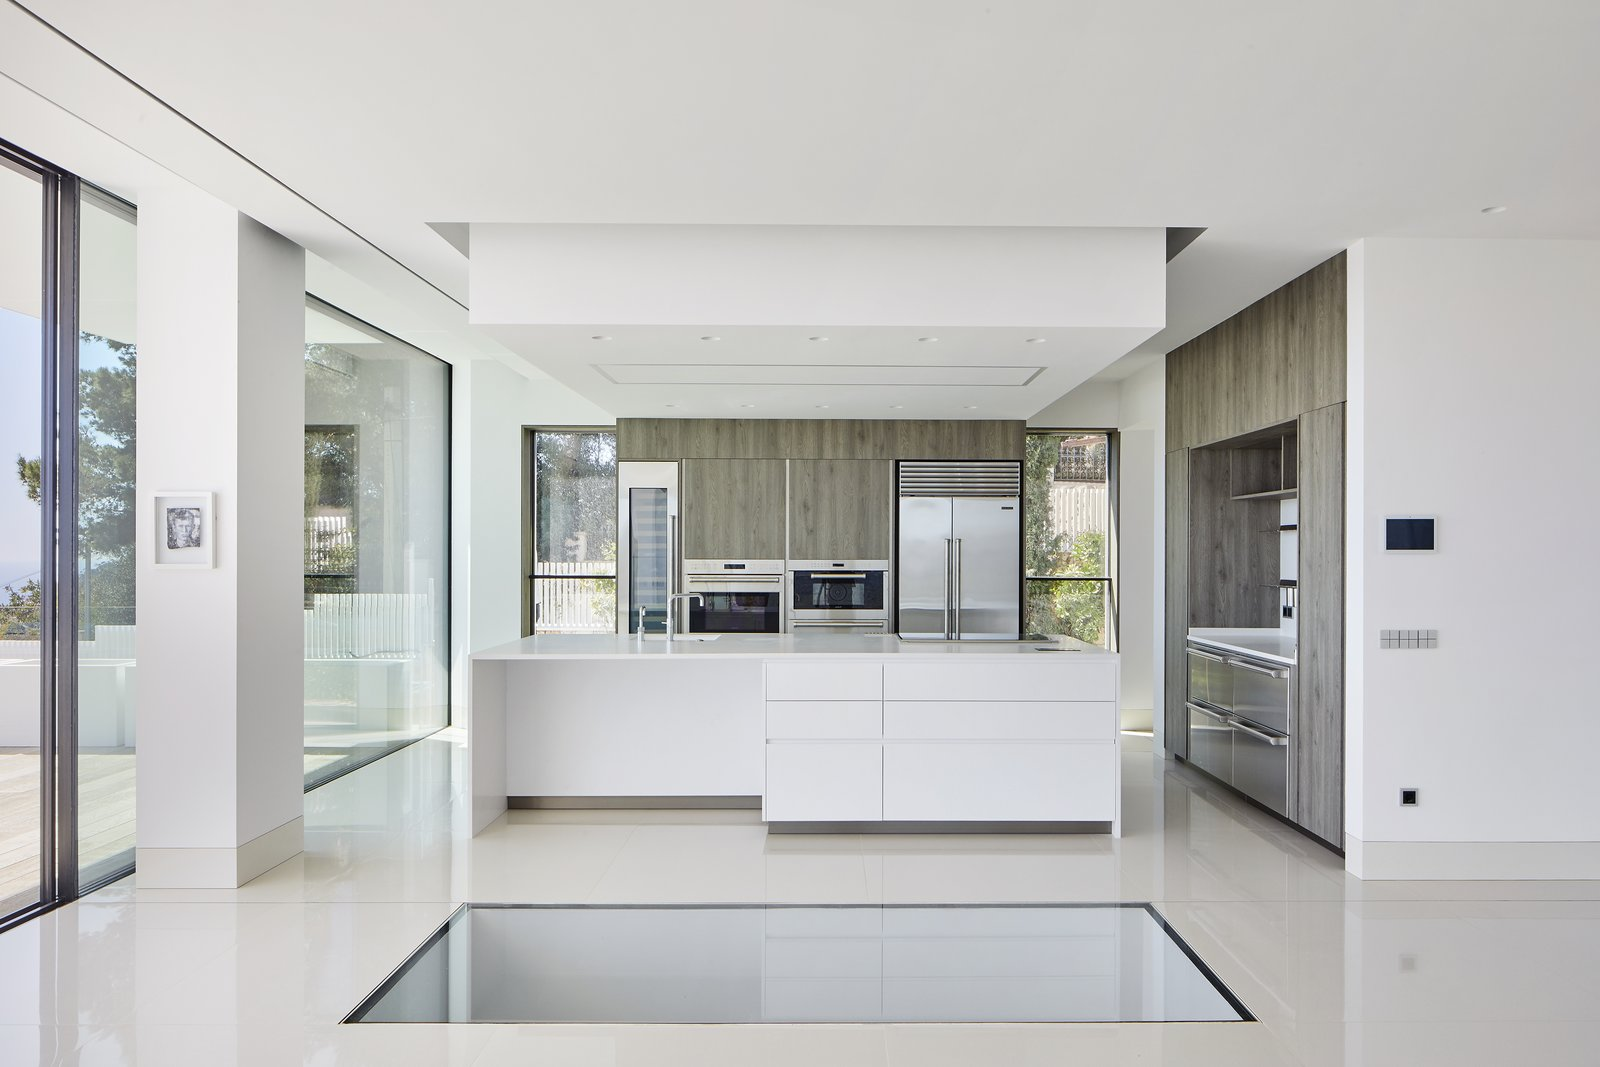 Kitchen, Wall Oven, White, Metal, Microwave, Wine Cooler, Drop In, Laminate, Ceiling, Granite, Range, Range Hood, Dishwasher, Ice Maker, Table, Beverage Center, Cooktops, Wood, Refrigerator, and Porcelain Tile Kitchen.  Best Kitchen Drop In Ceiling Ice Maker White Laminate Porcelain Tile Refrigerator Photos from 廚房